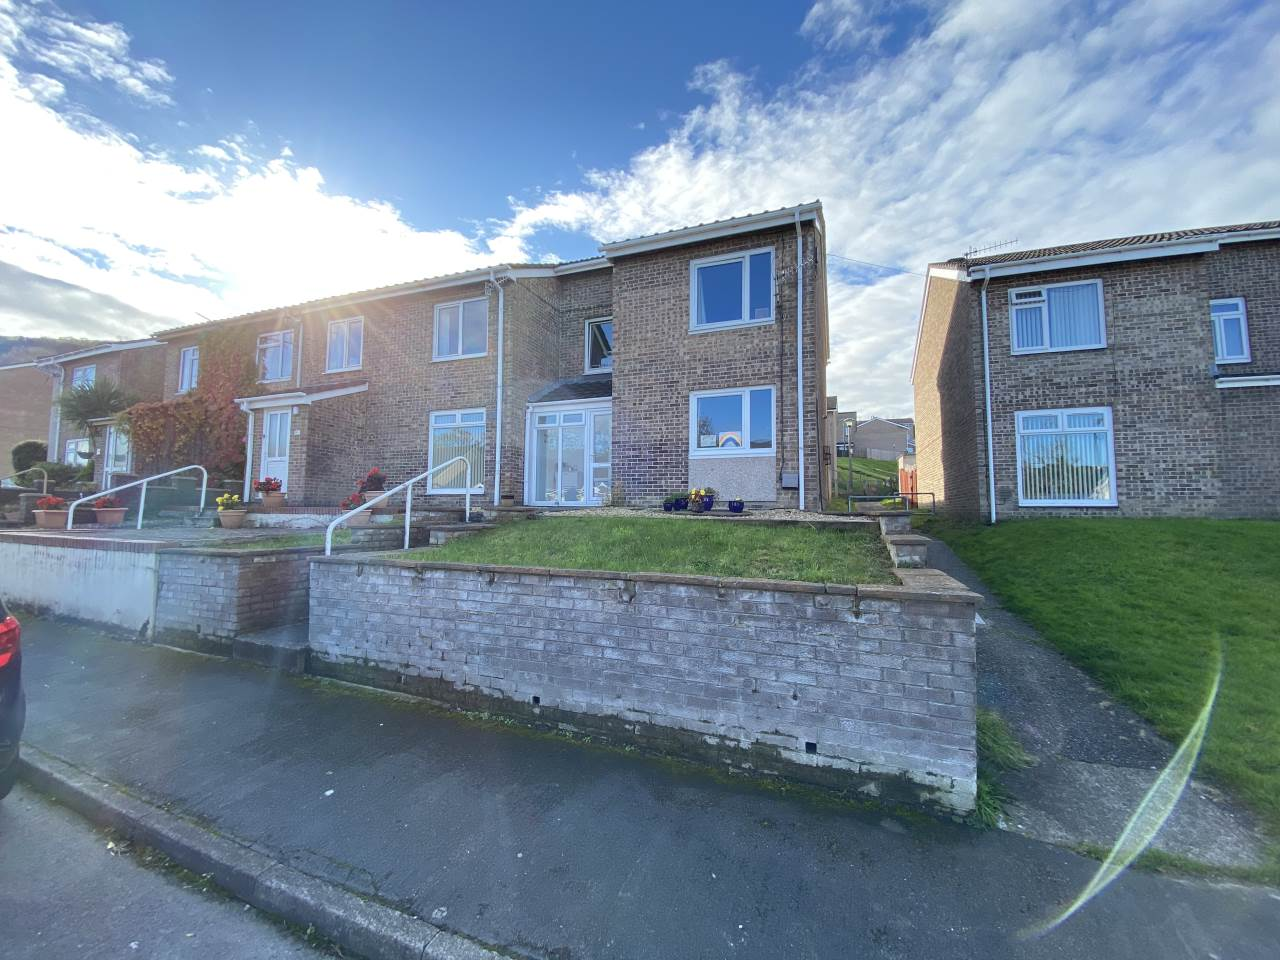 3 bed semi-detached house for sale in Heol Tyn Y Fron, Penparcau - Property Image 1